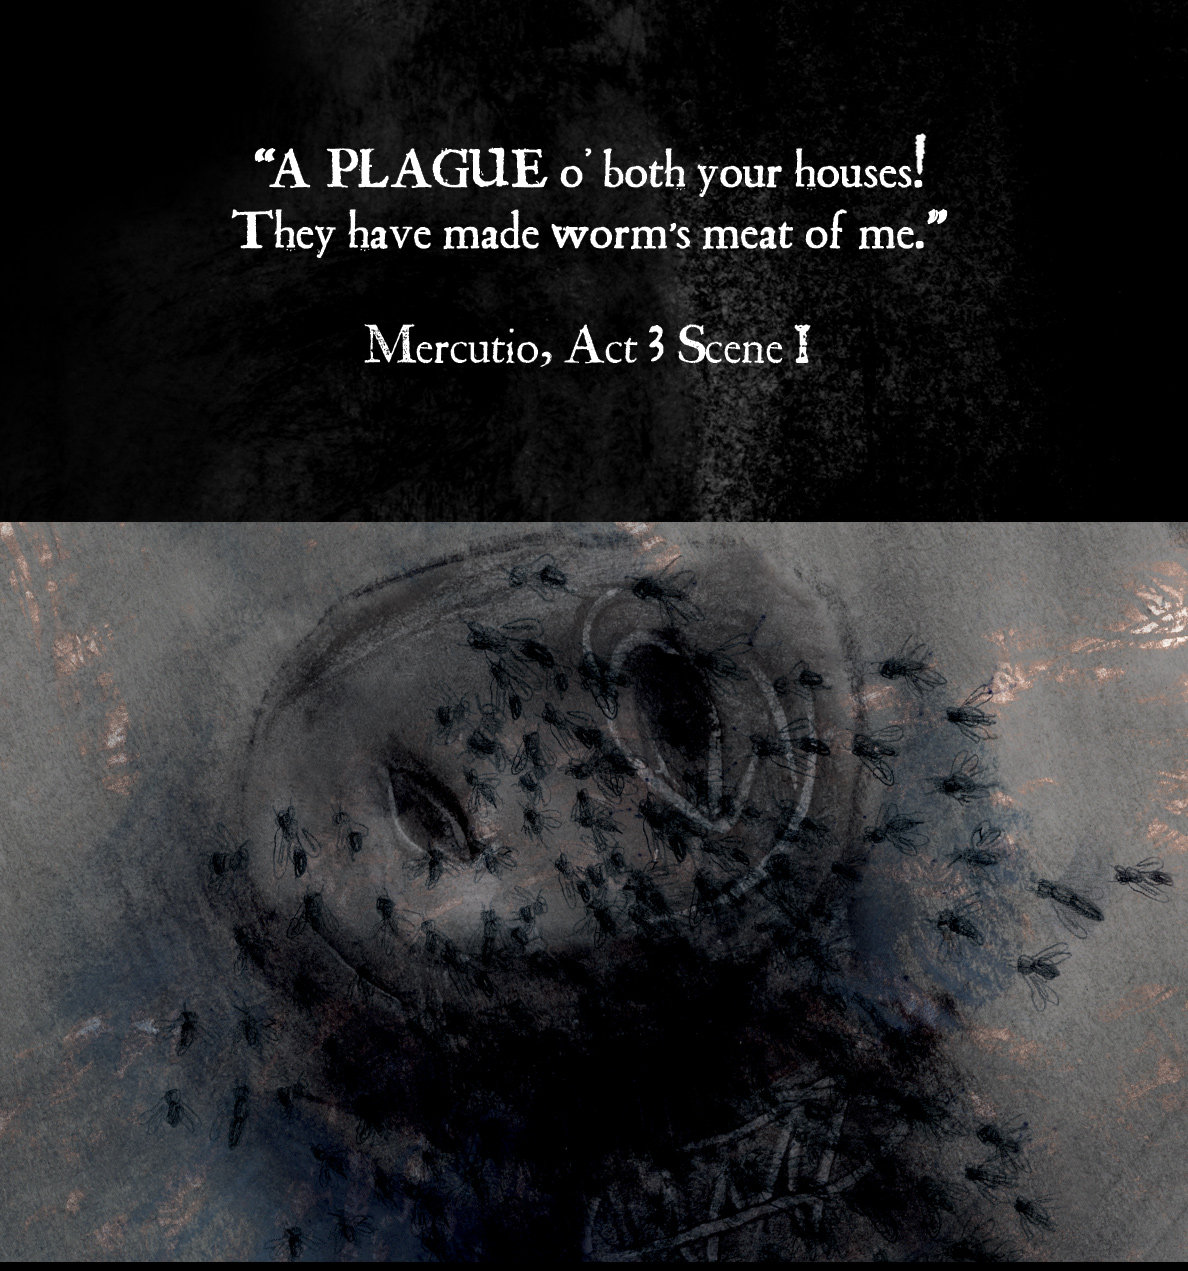 Romeo_and_Juliet_graphic_novel_william_shakespeare_a_plague_o_both_your_houses_mercutio_05